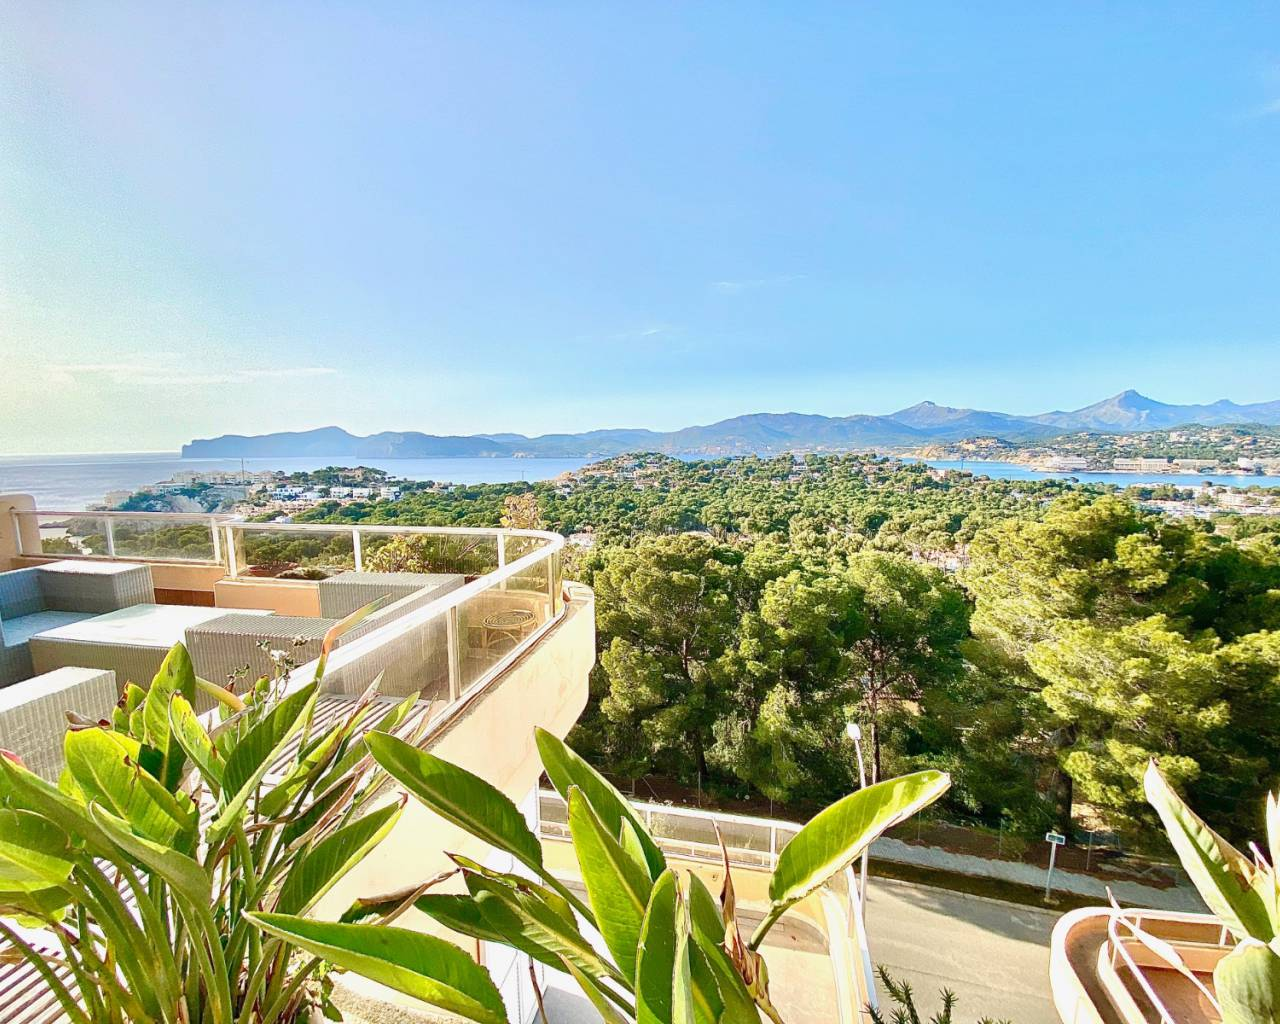 Apartment - For sale - Nova Santa Ponsa - Nova Santa Ponsa